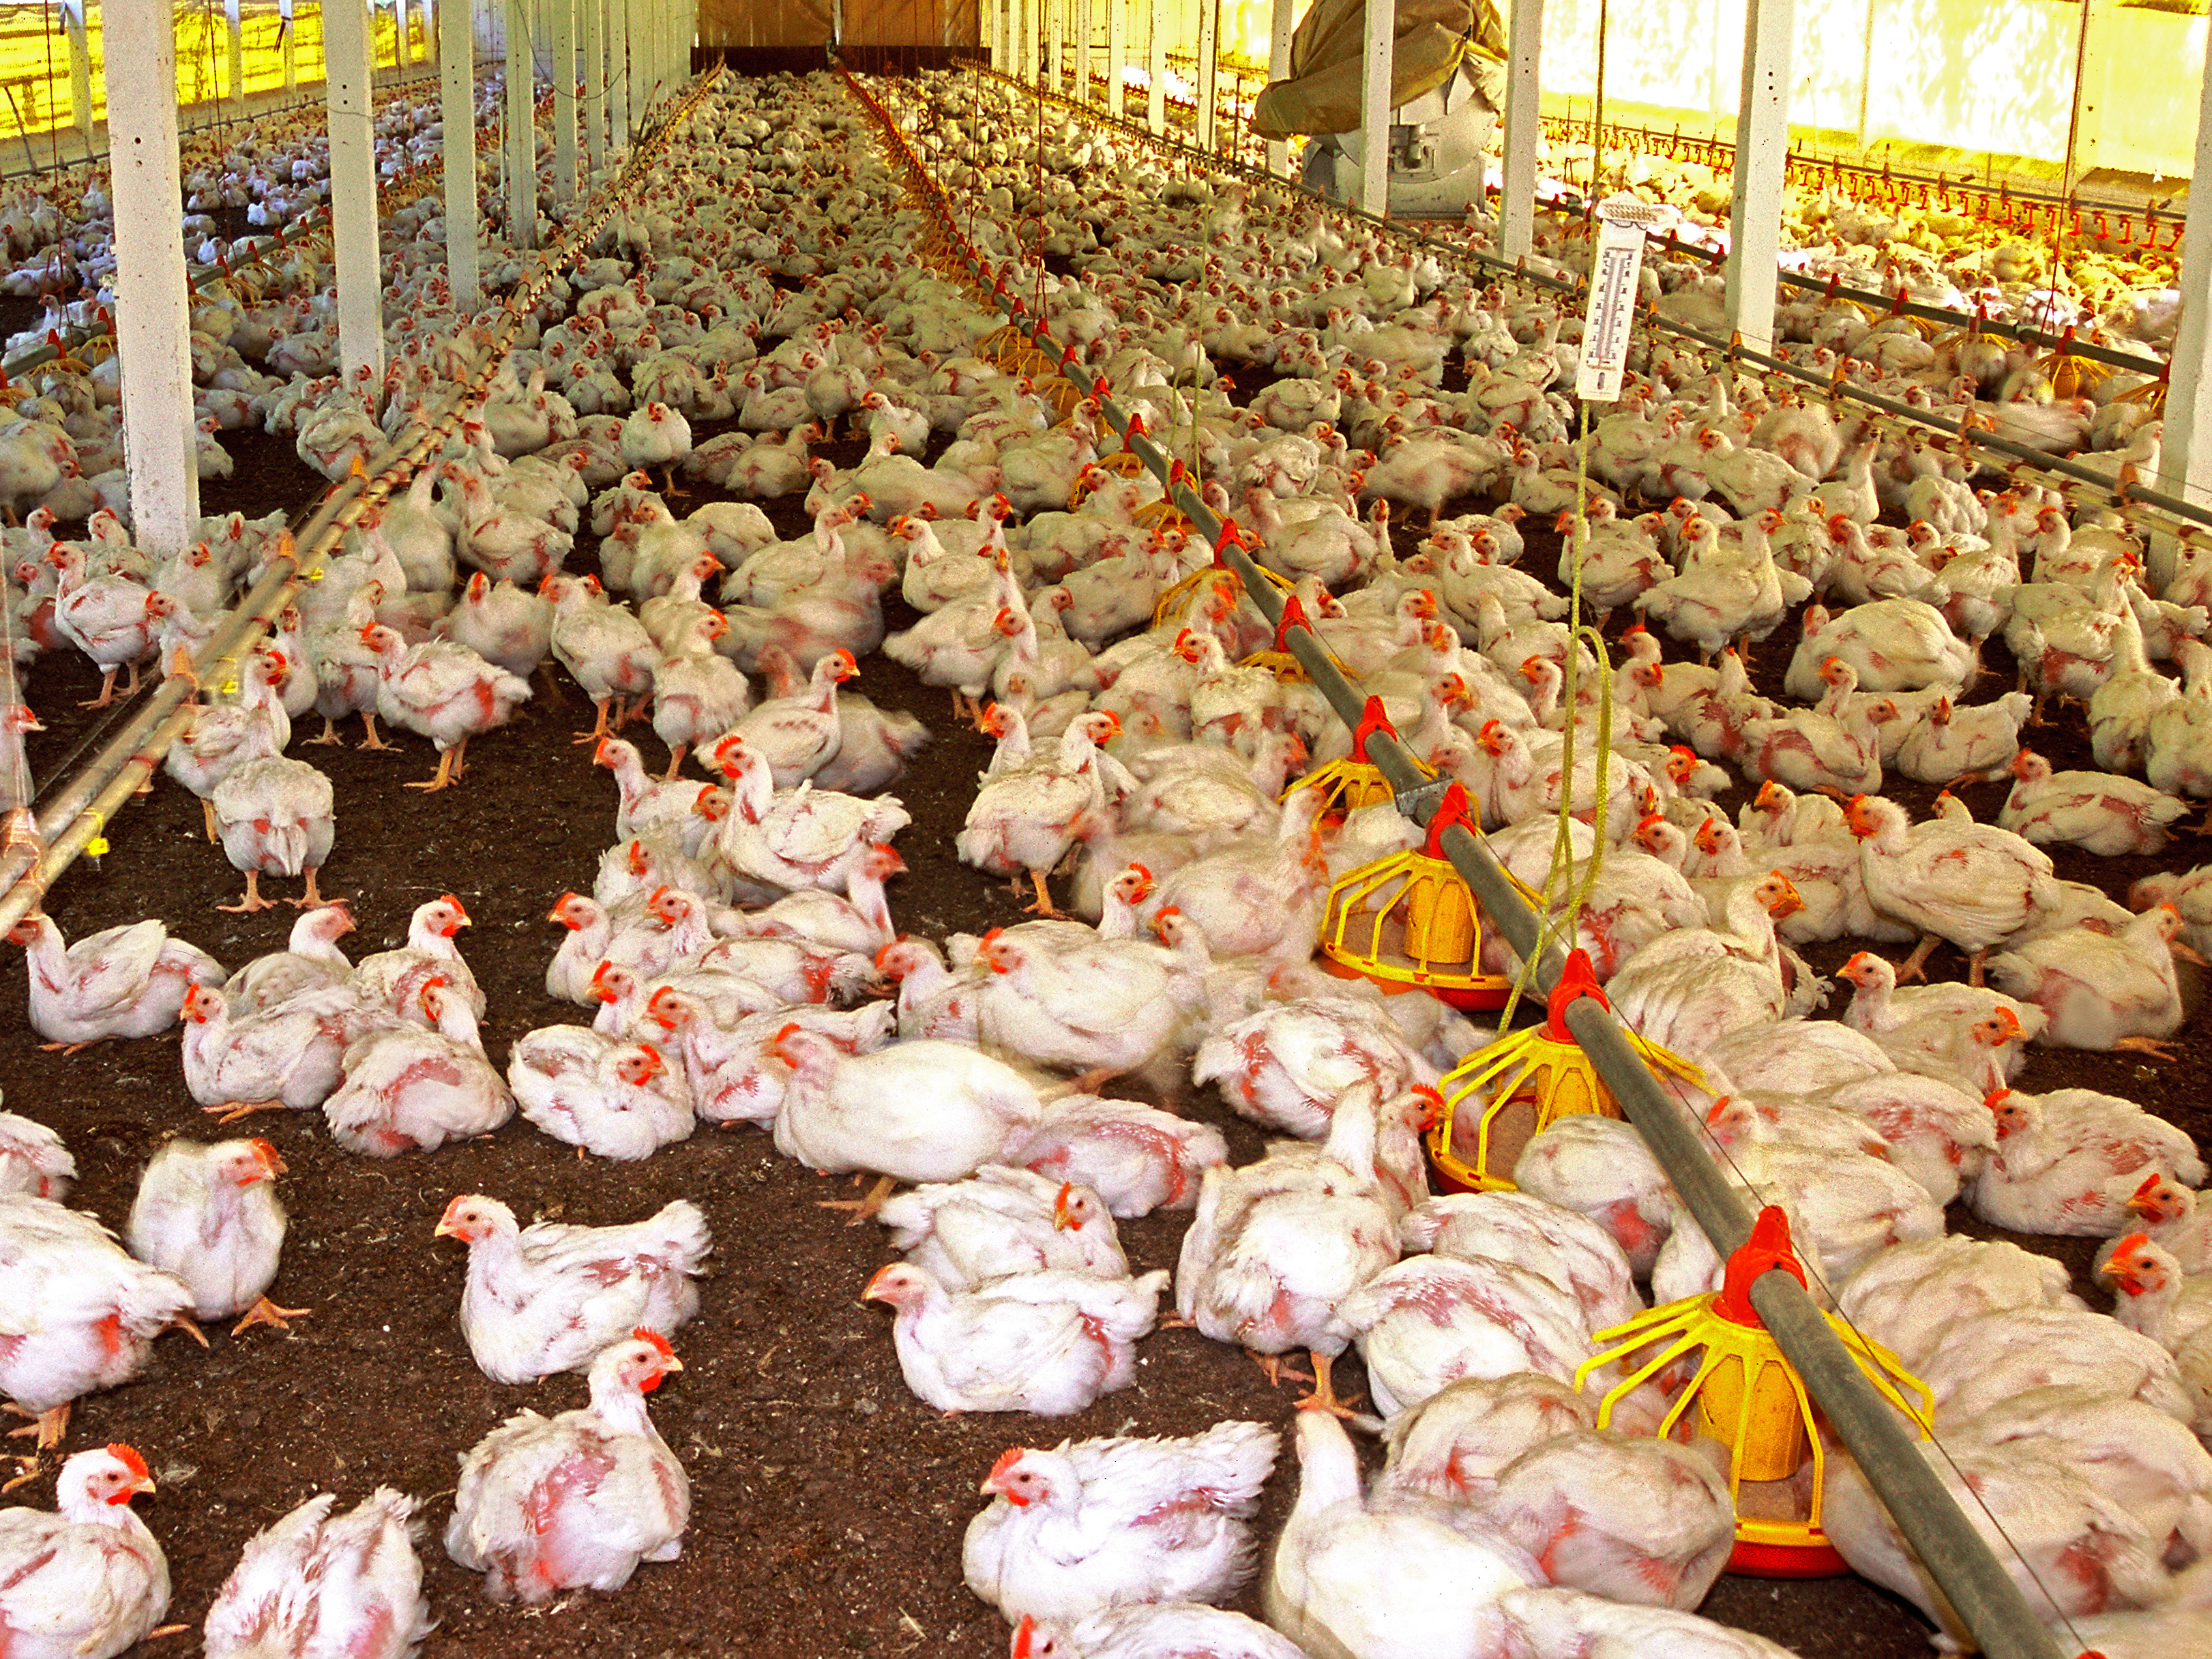 New USDA regulations could further corrupt poultry processing